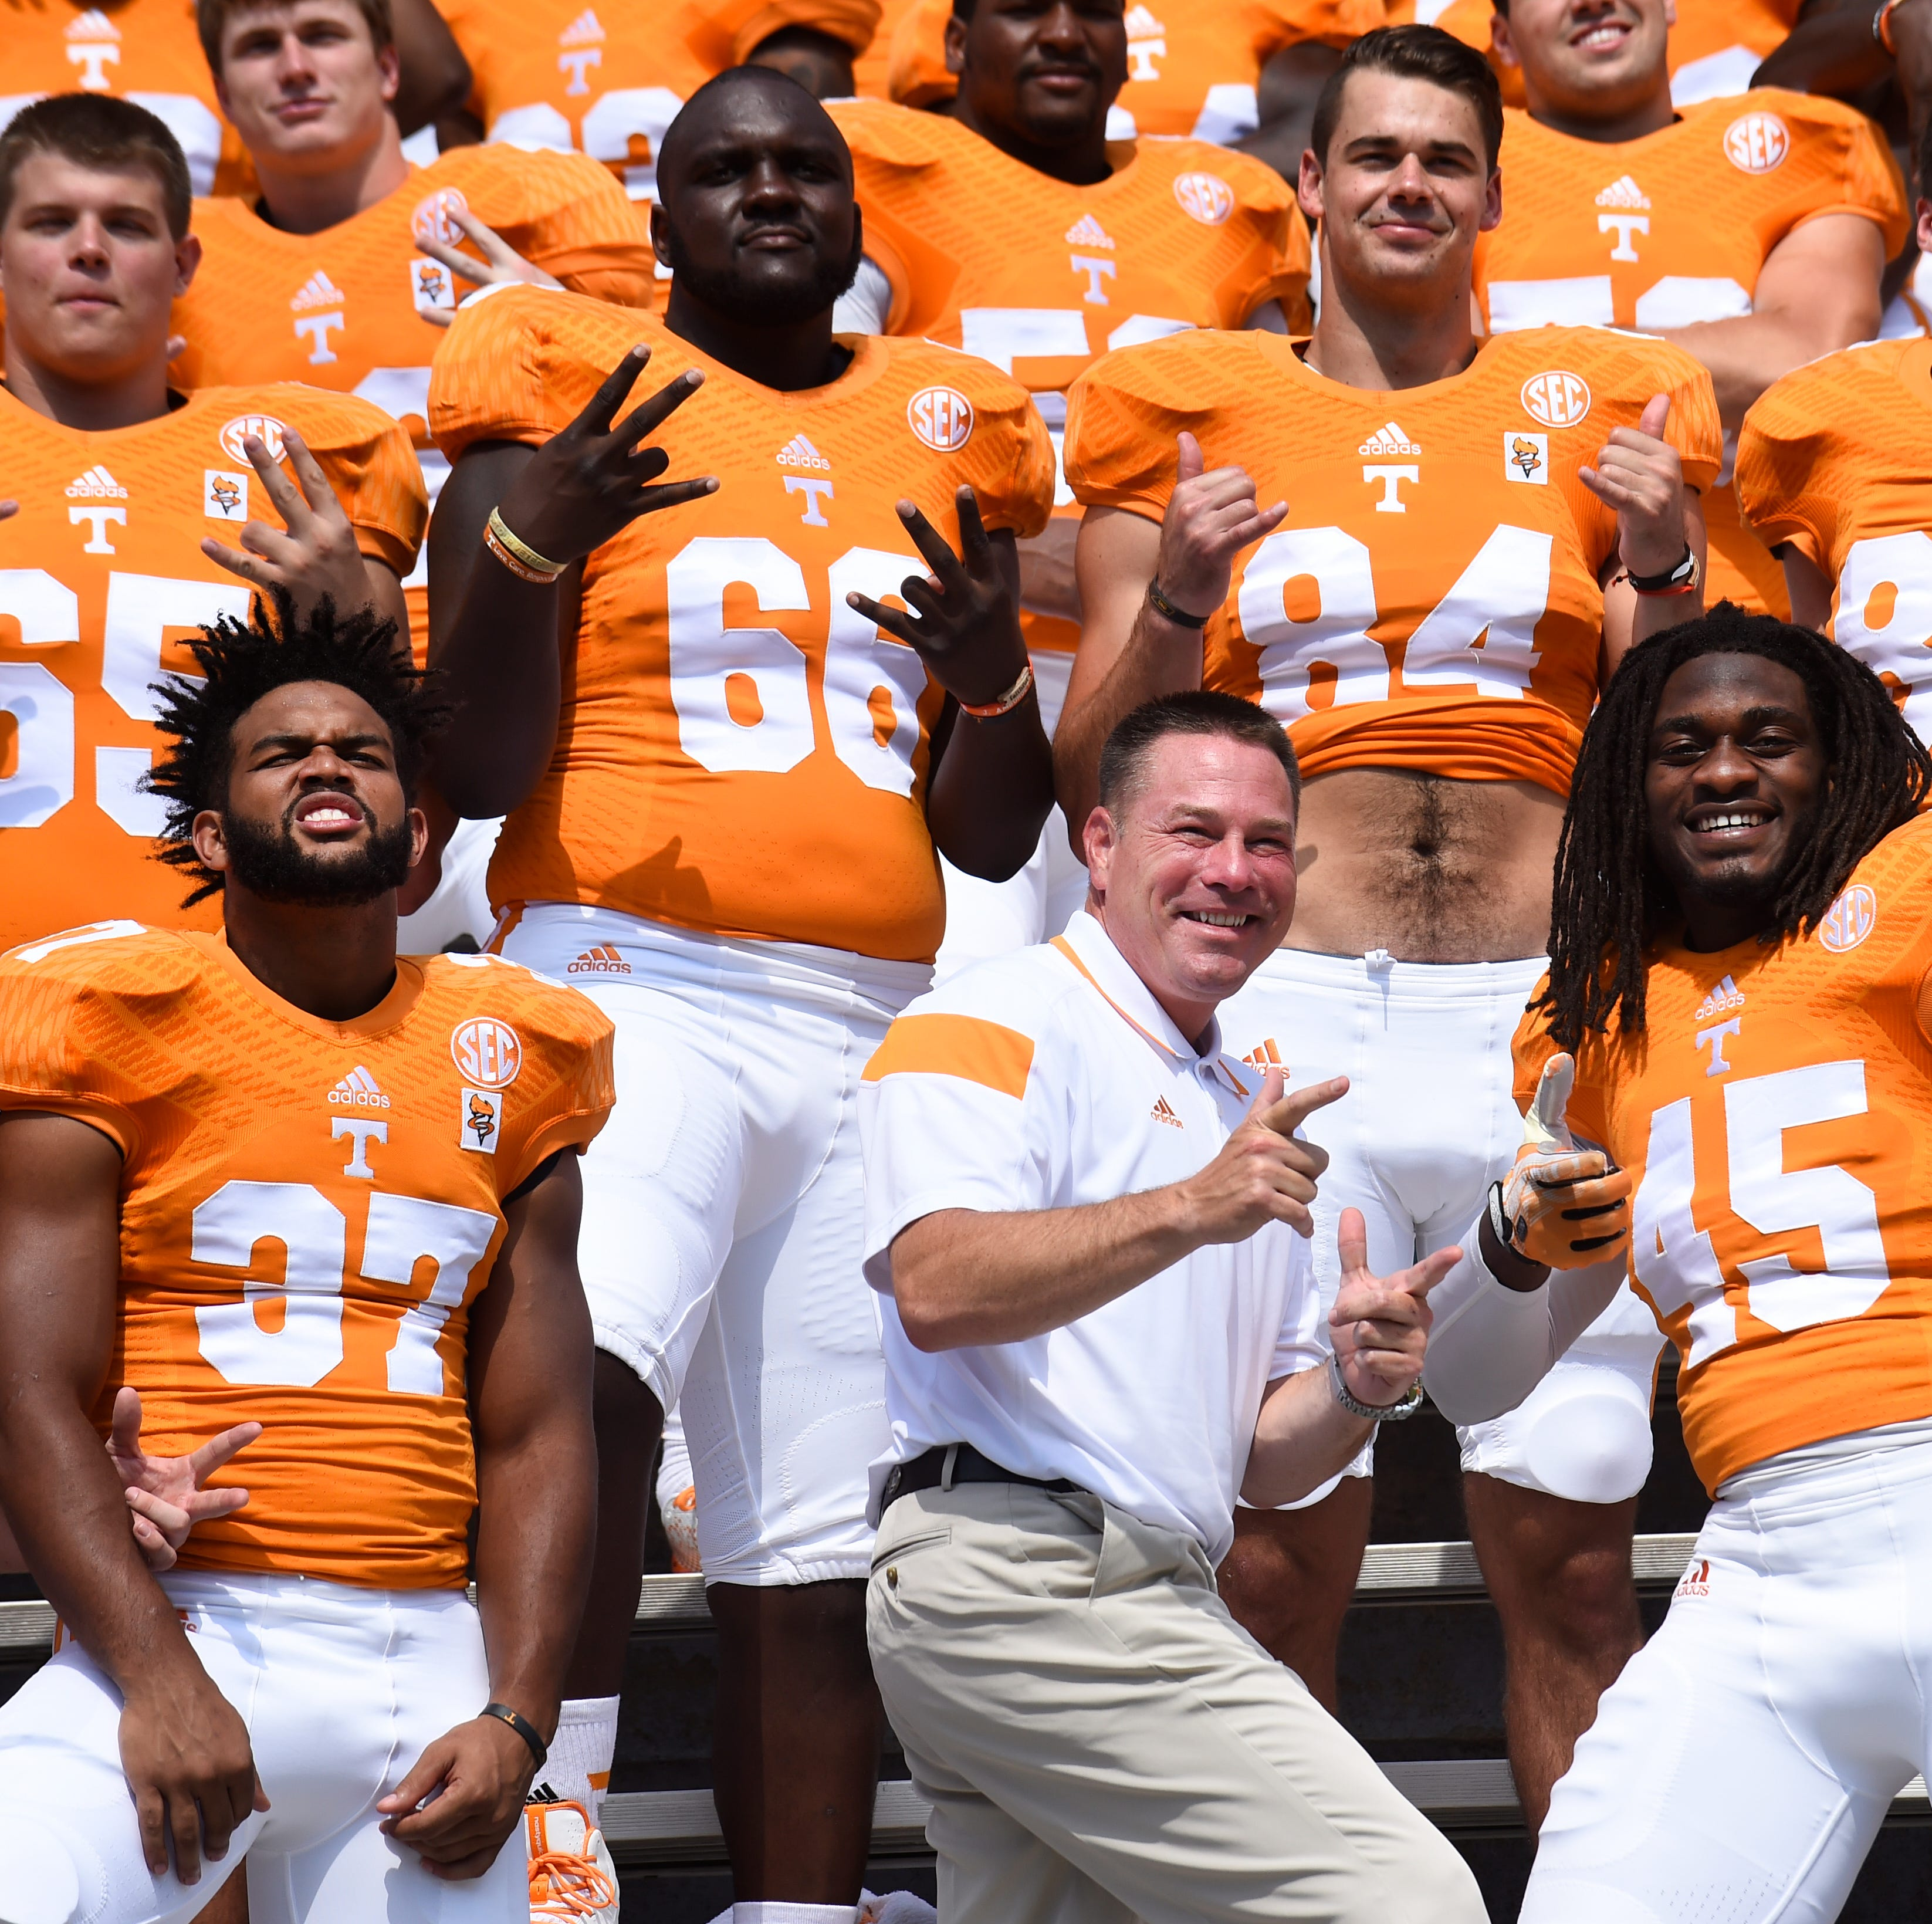 Twitter reacts to reports of Butch Jones hiring at Maryland